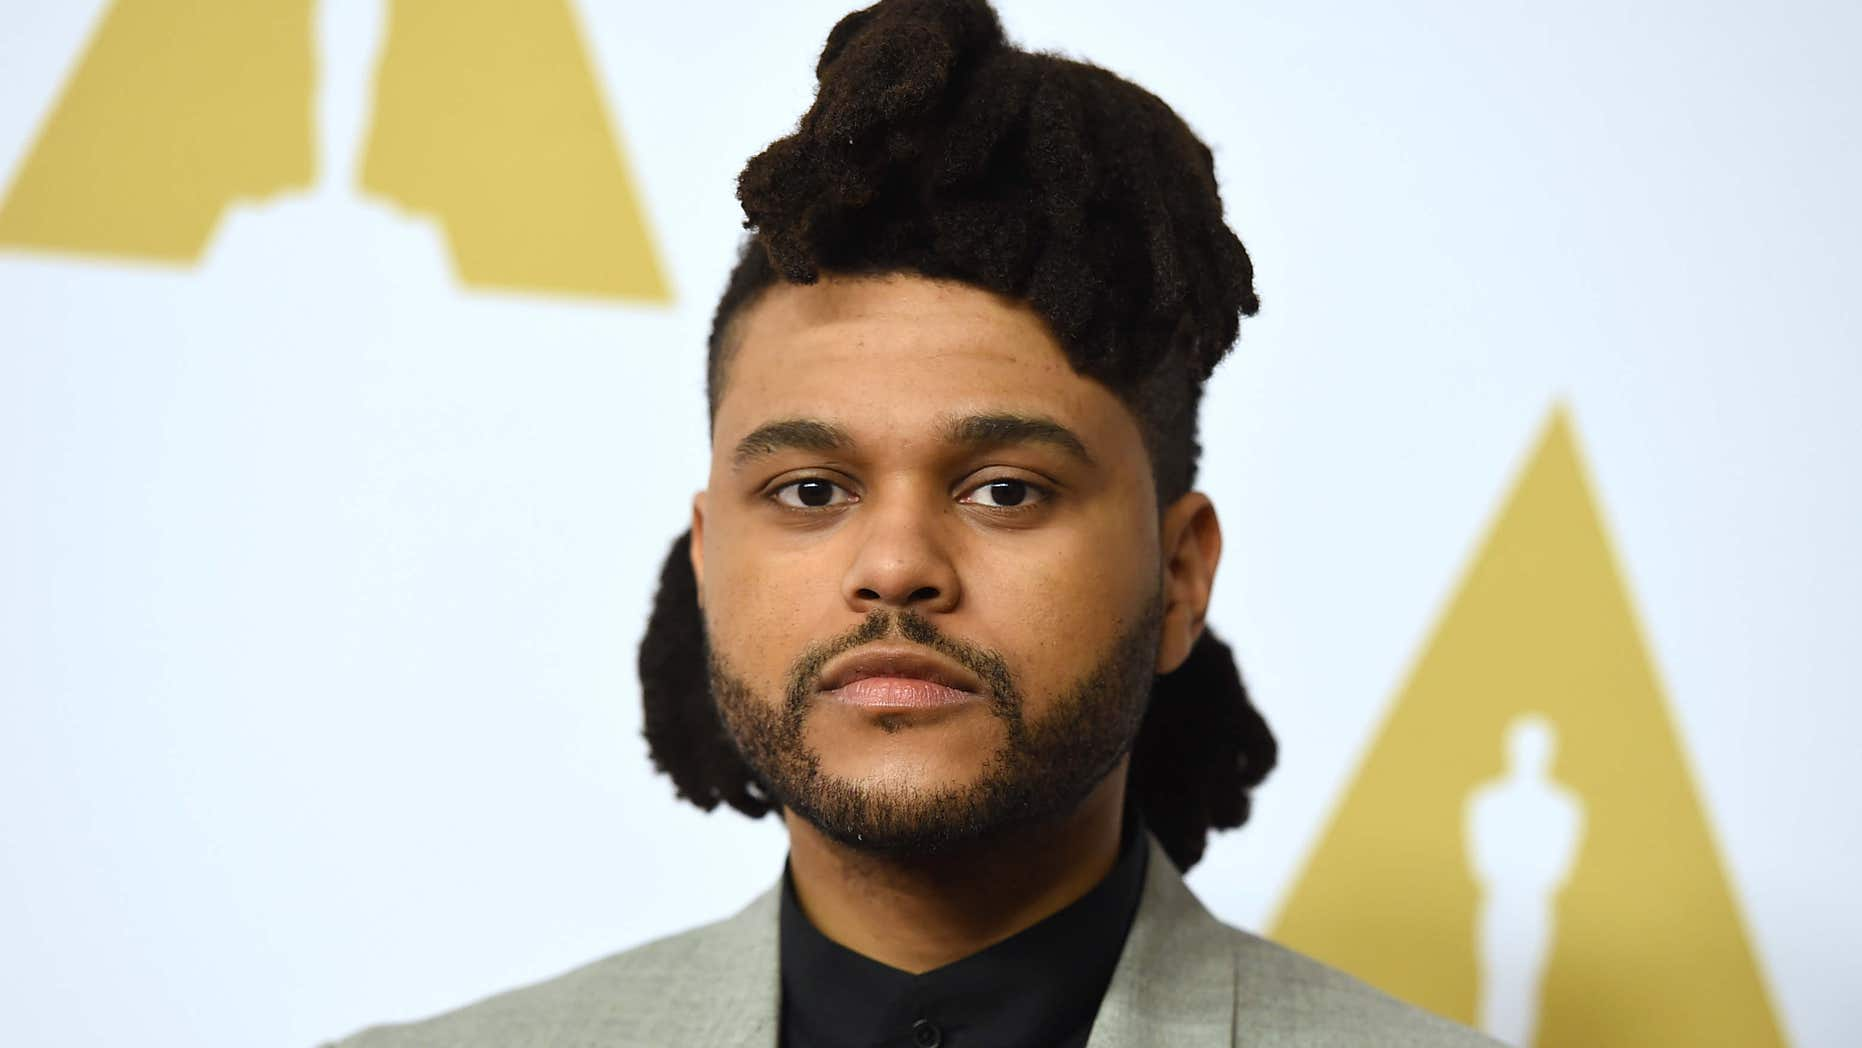 FILE - In this Feb. 8, 2016 file photo, The Weeknd arrives at the 88th Academy Awards nominees luncheon in Beverly Hills, Calif.